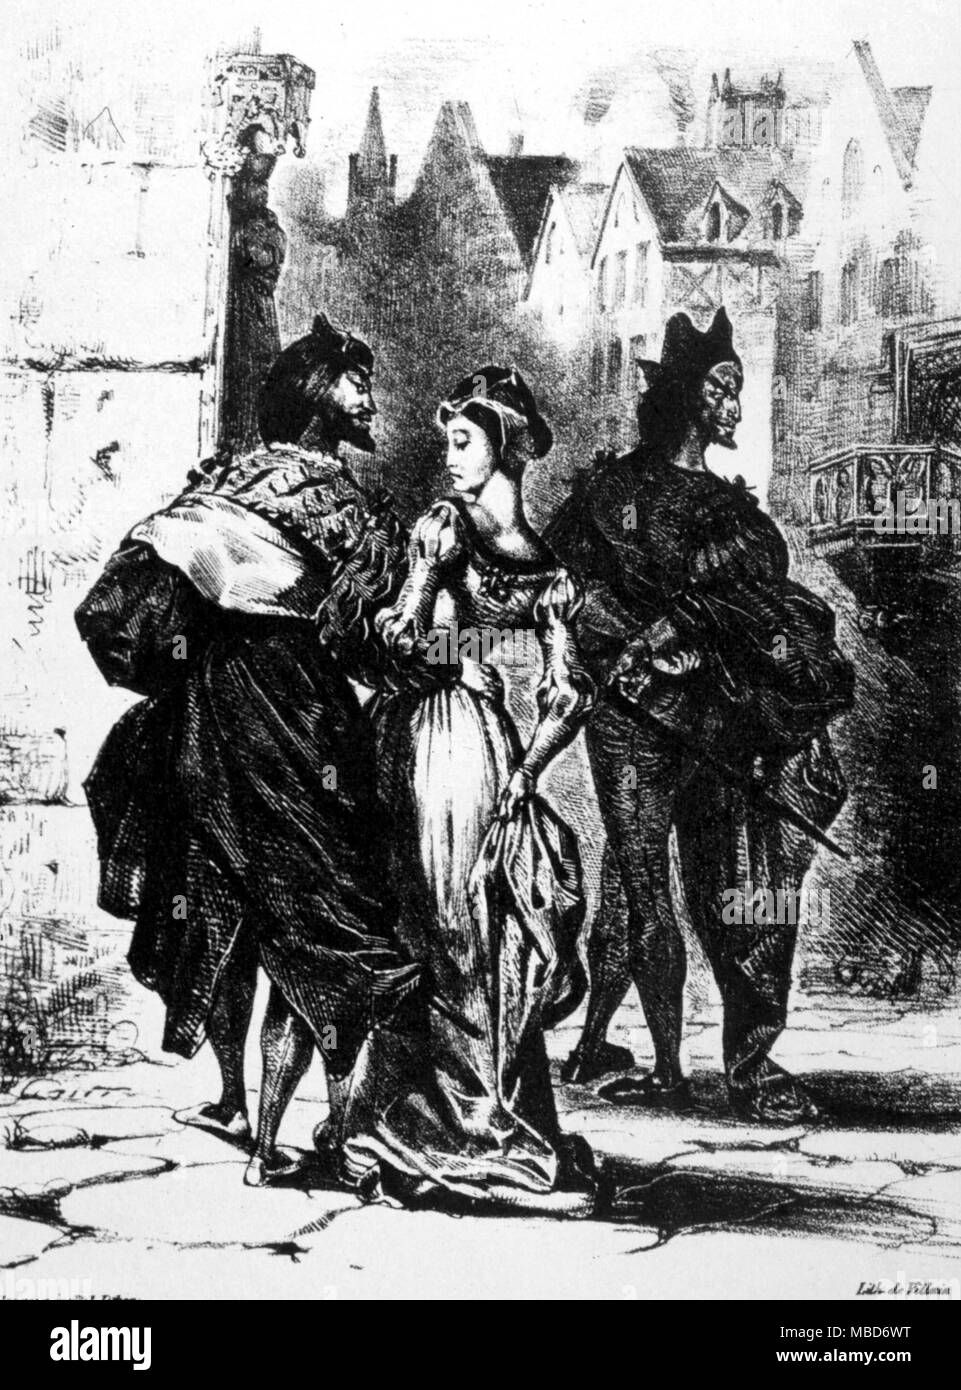 Faust, Mephistopheles and Gretchen - from the lithograph by Delacroix (1798-1863) to Goethe's Faust - Part I - Stock Image